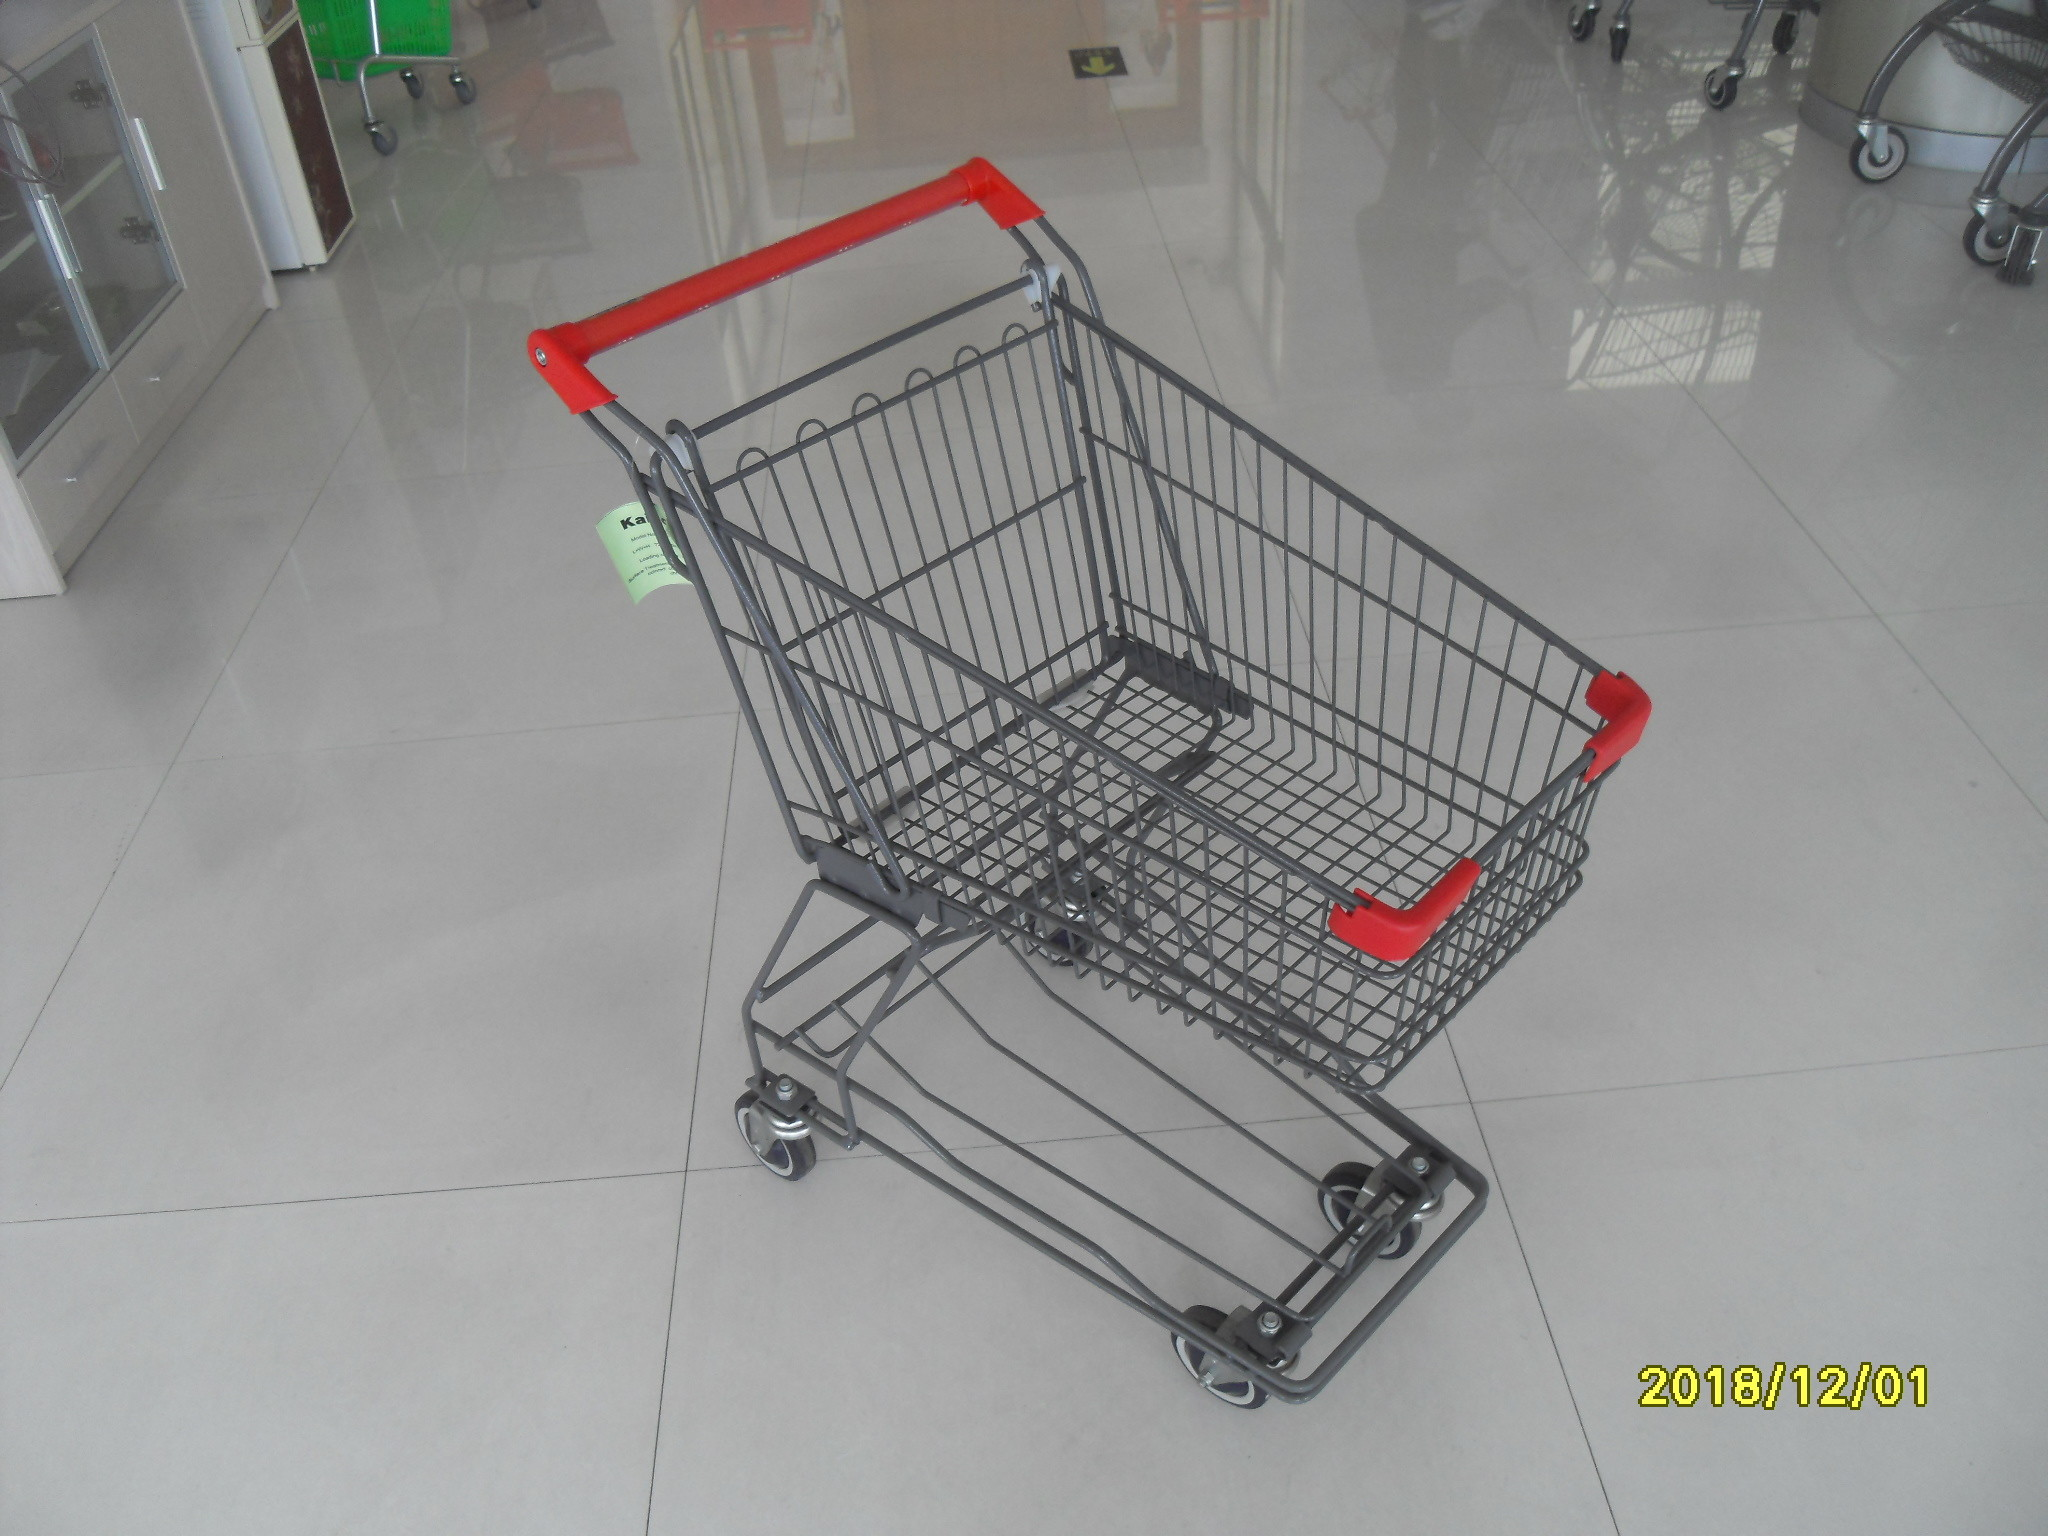 Supermarket 4 Wheel Shopping Cart With Base Grid 45L And Red Handle Bar